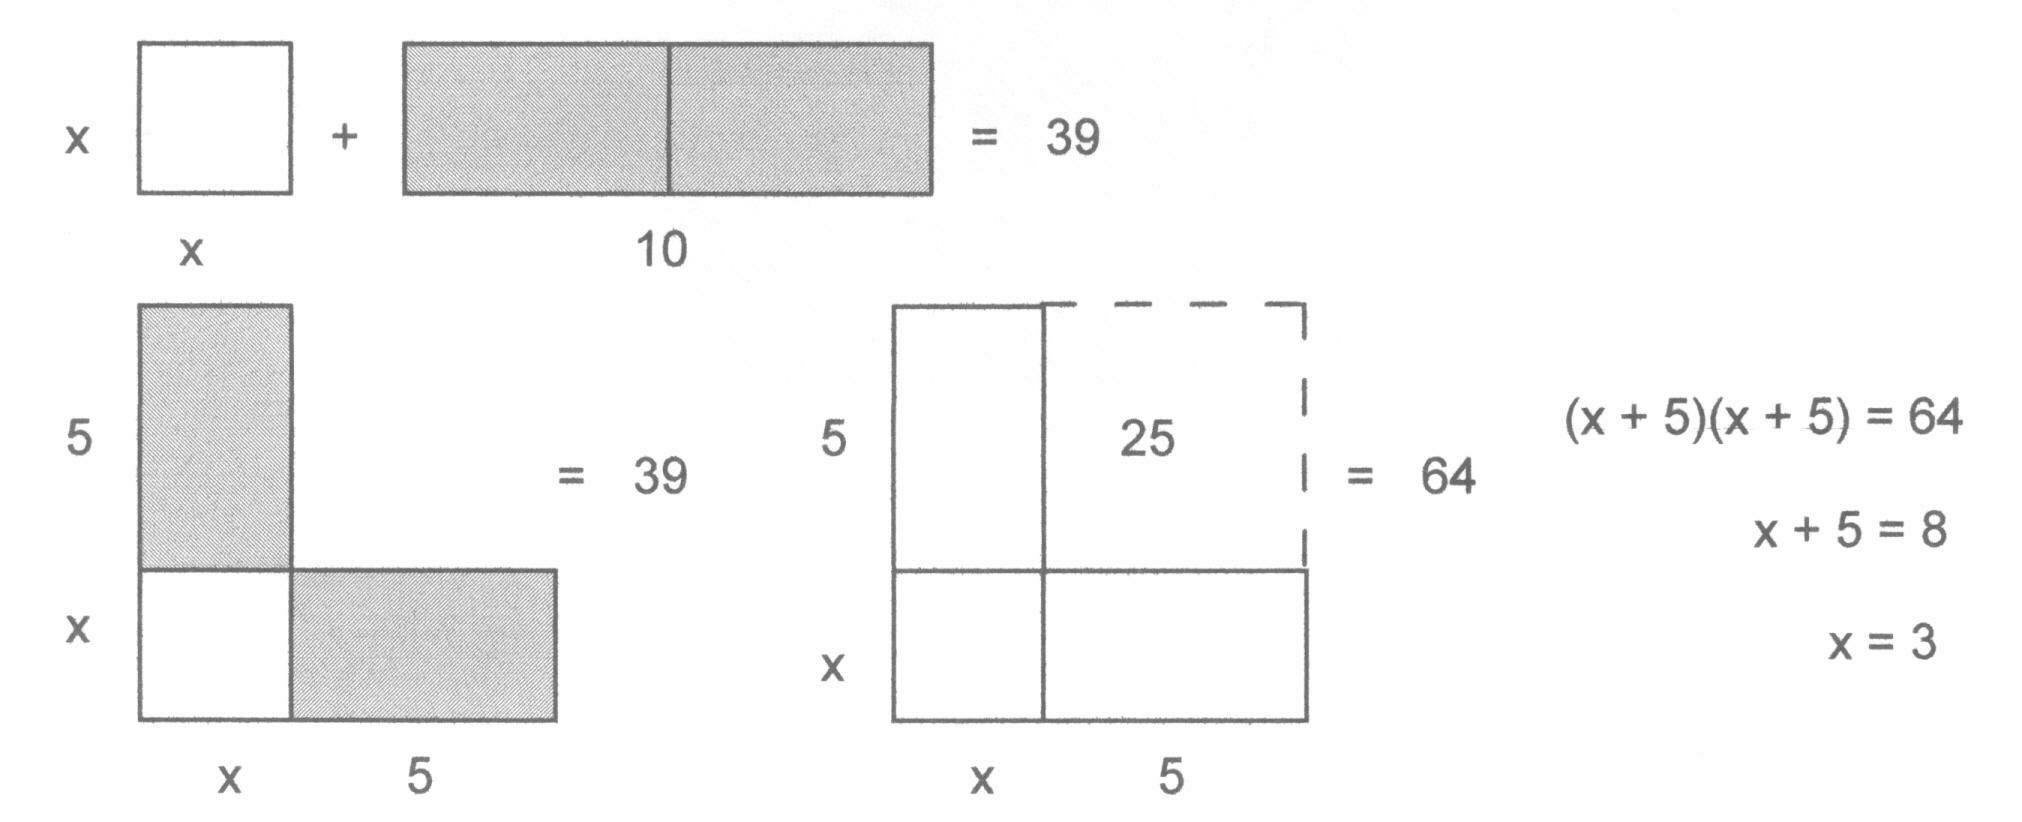 Out Orpletes The Larger Square The Addition Increases The Given  Size Of The Figure From \( 39\) To \( 39 + 25 = 64 \) The Solution Follows  Easily